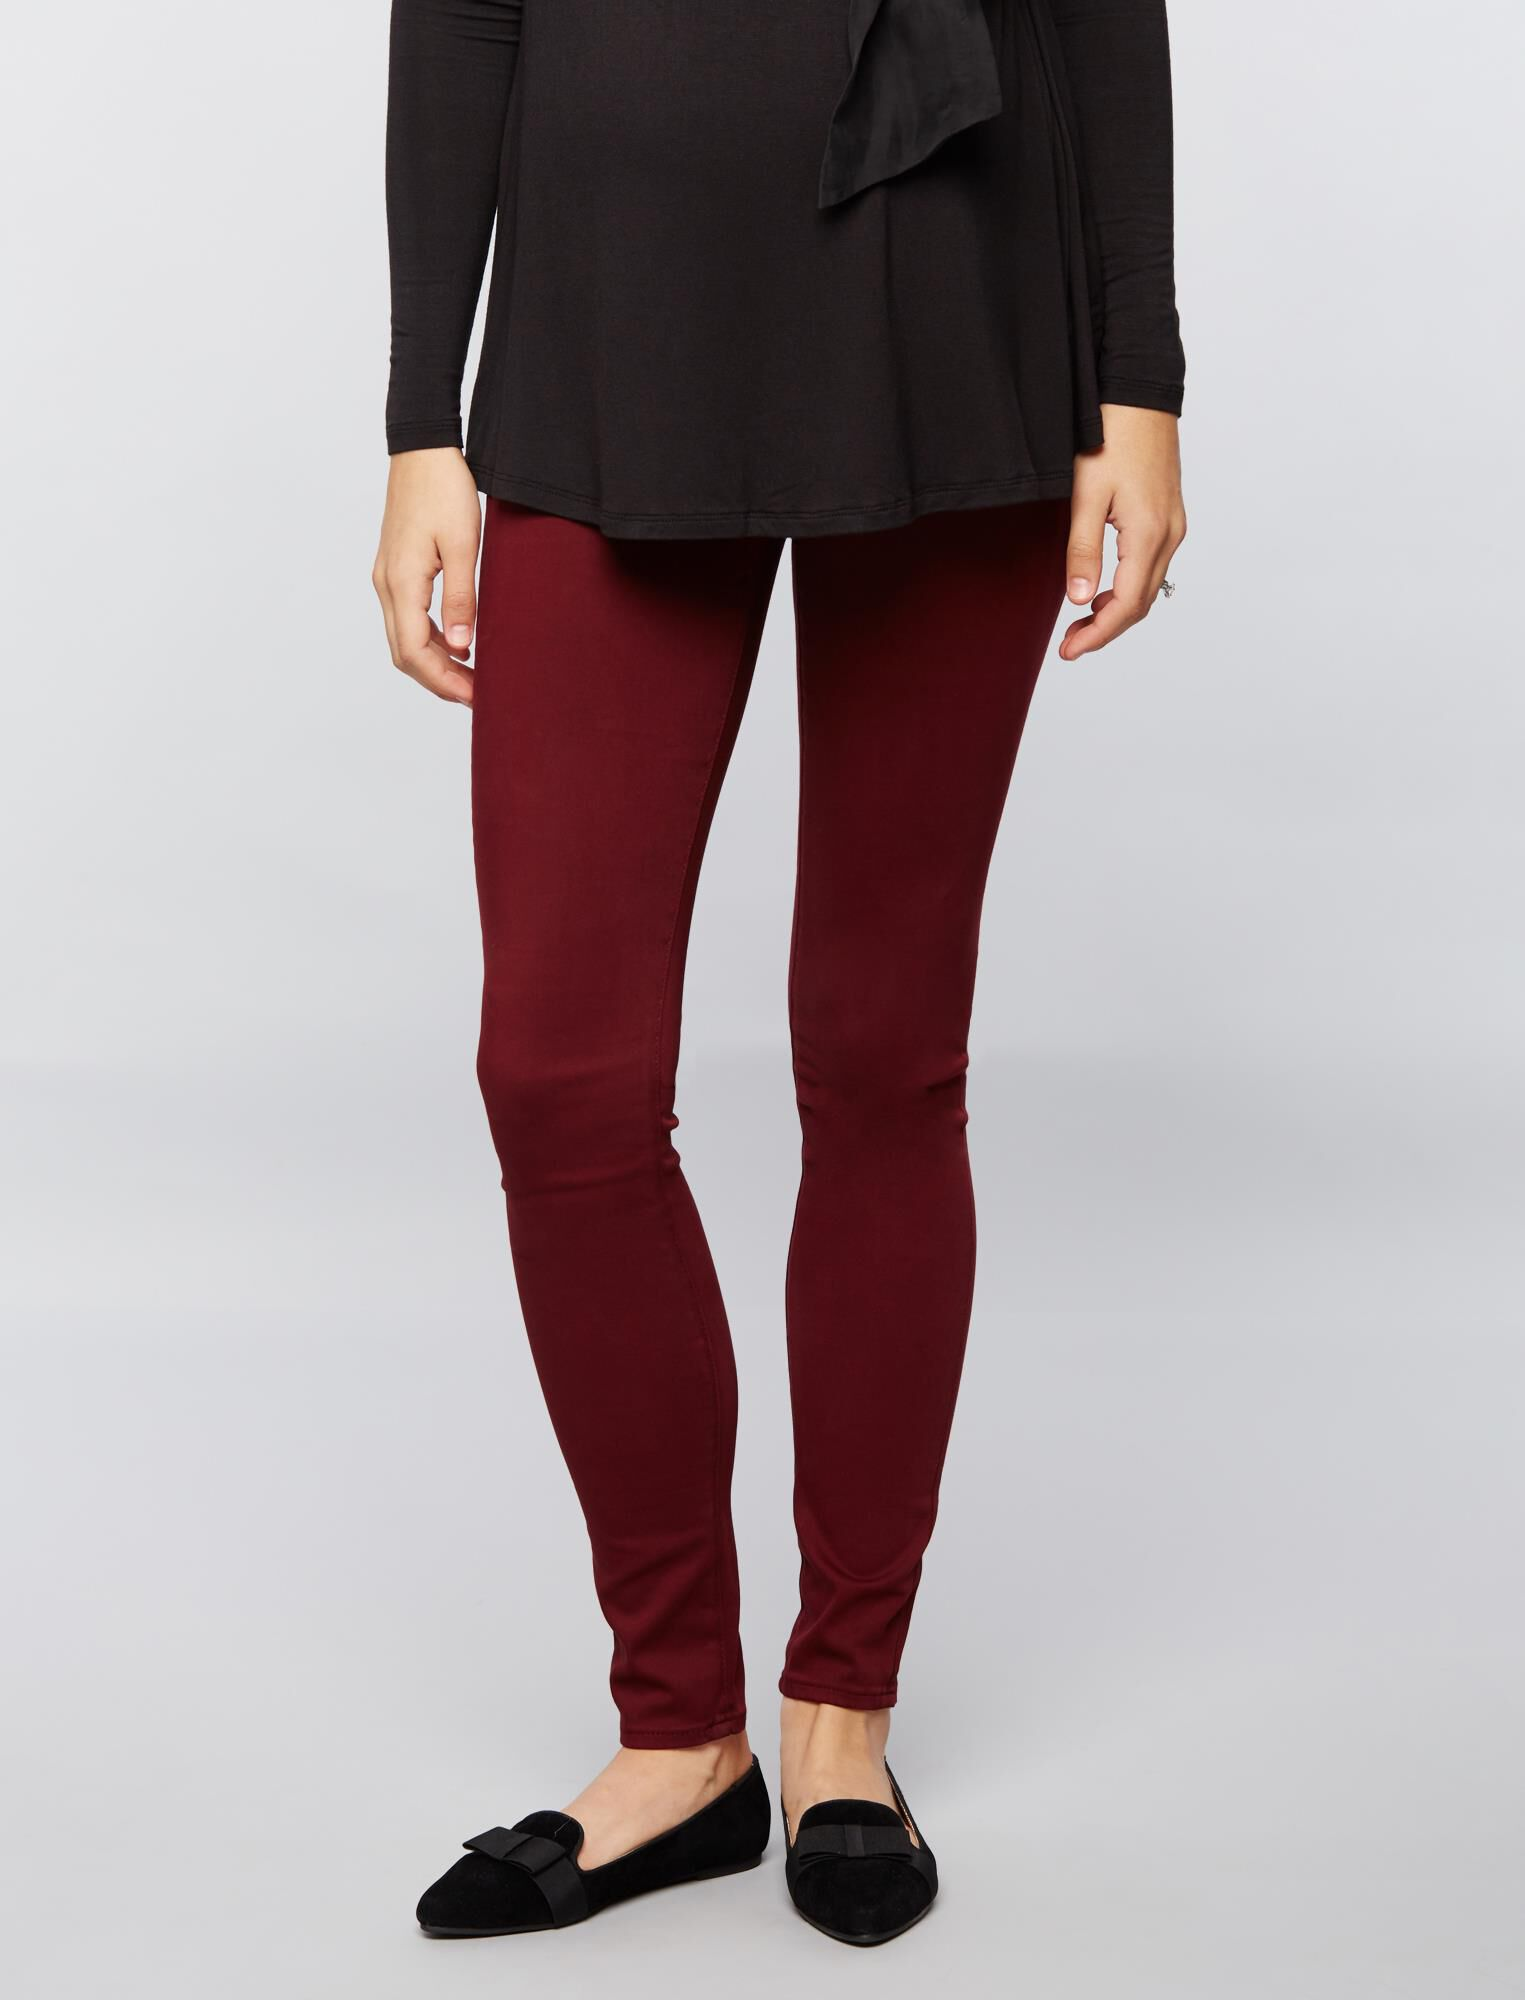 AG Jeans Secret Fit Belly Sateen Maternity Pants- Burgundy